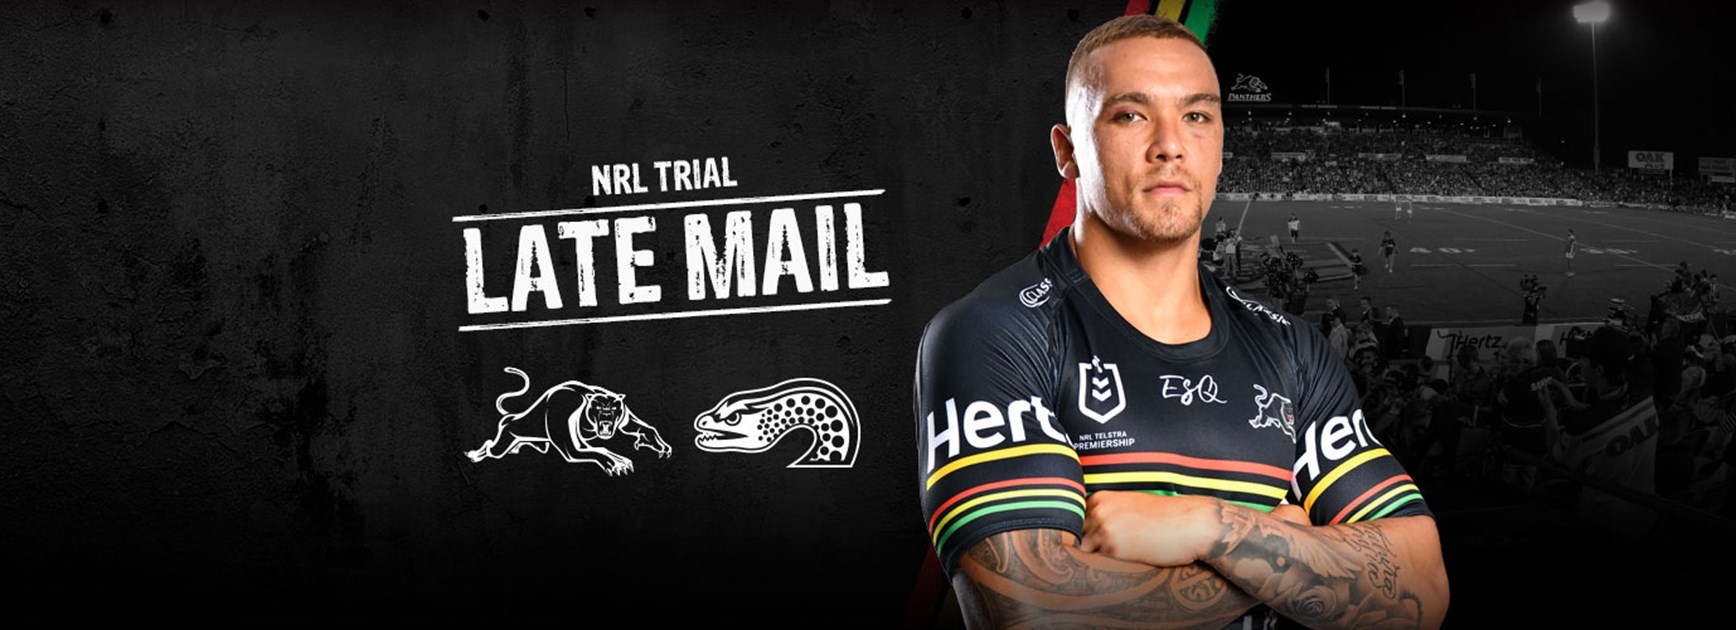 NRL Late Mail: Panthers v Eels